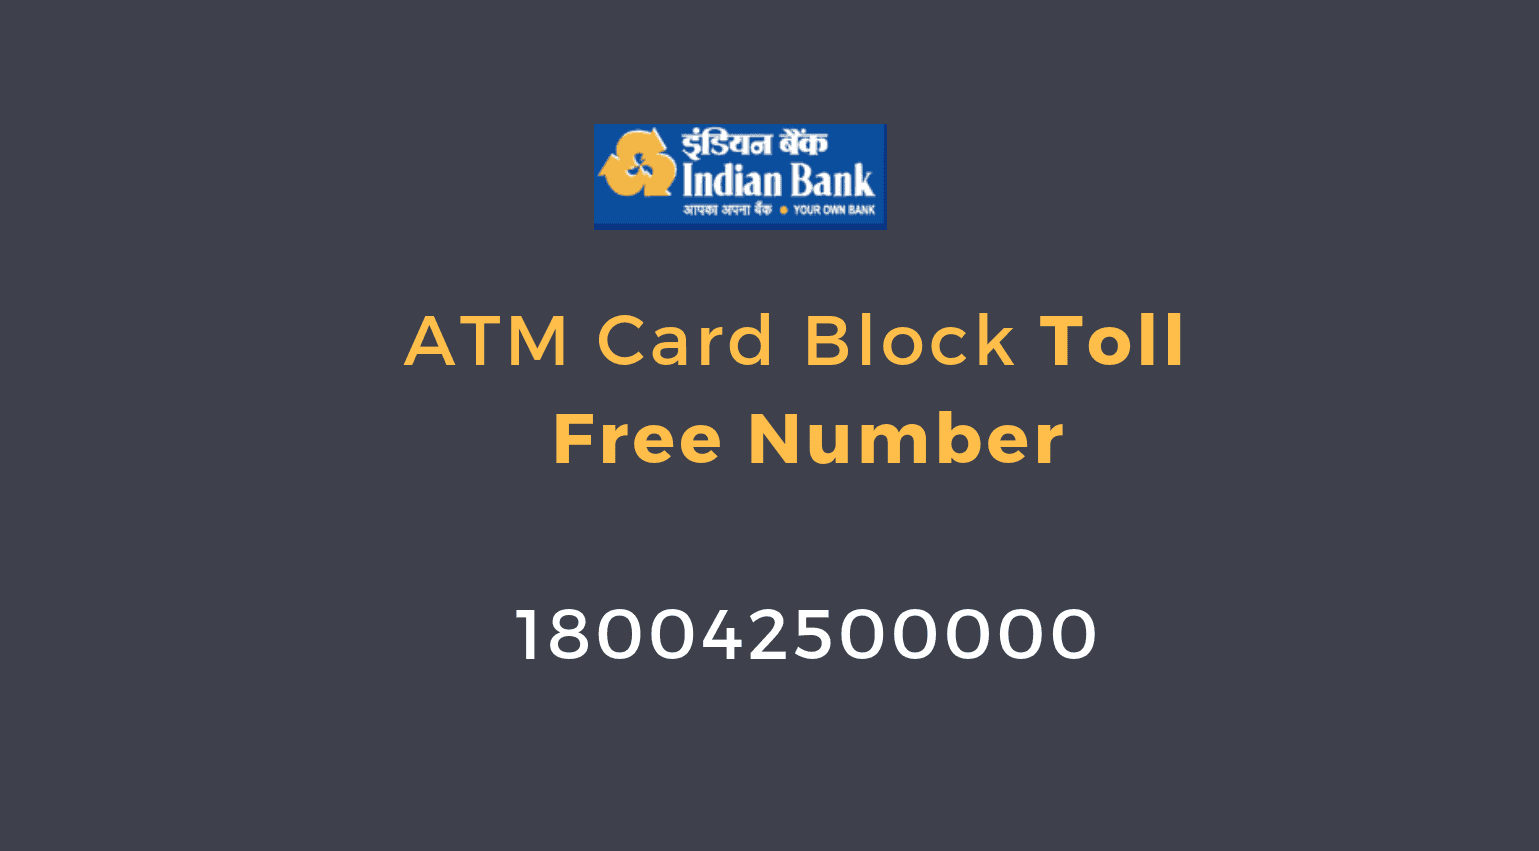 indian bank atm card block toll free number